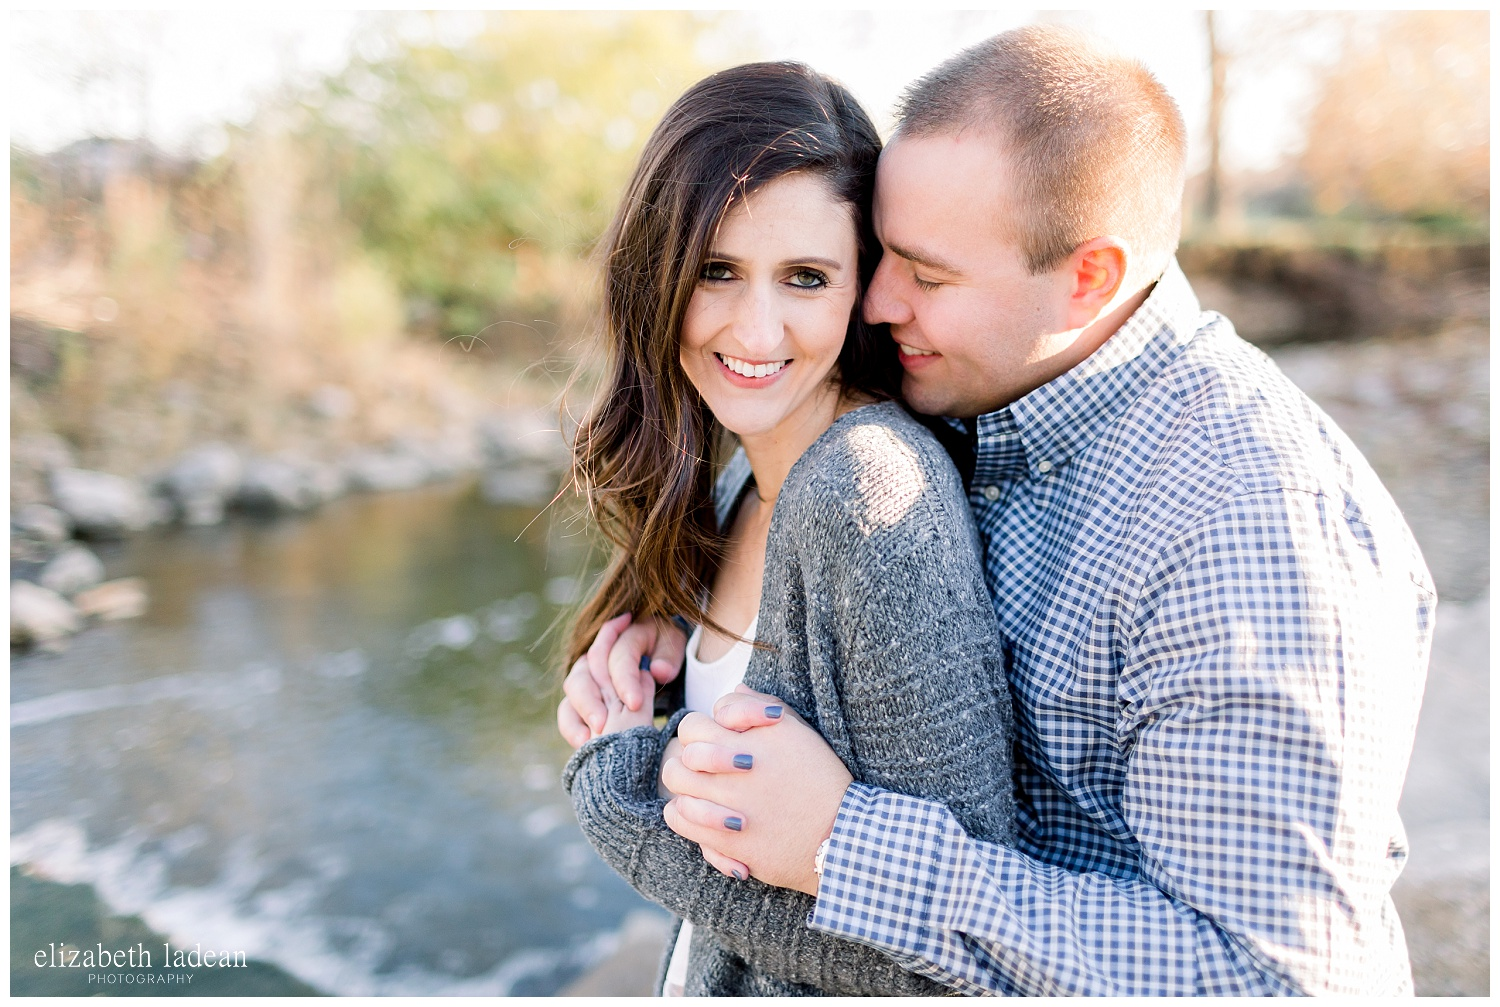 Joyful engagement photography